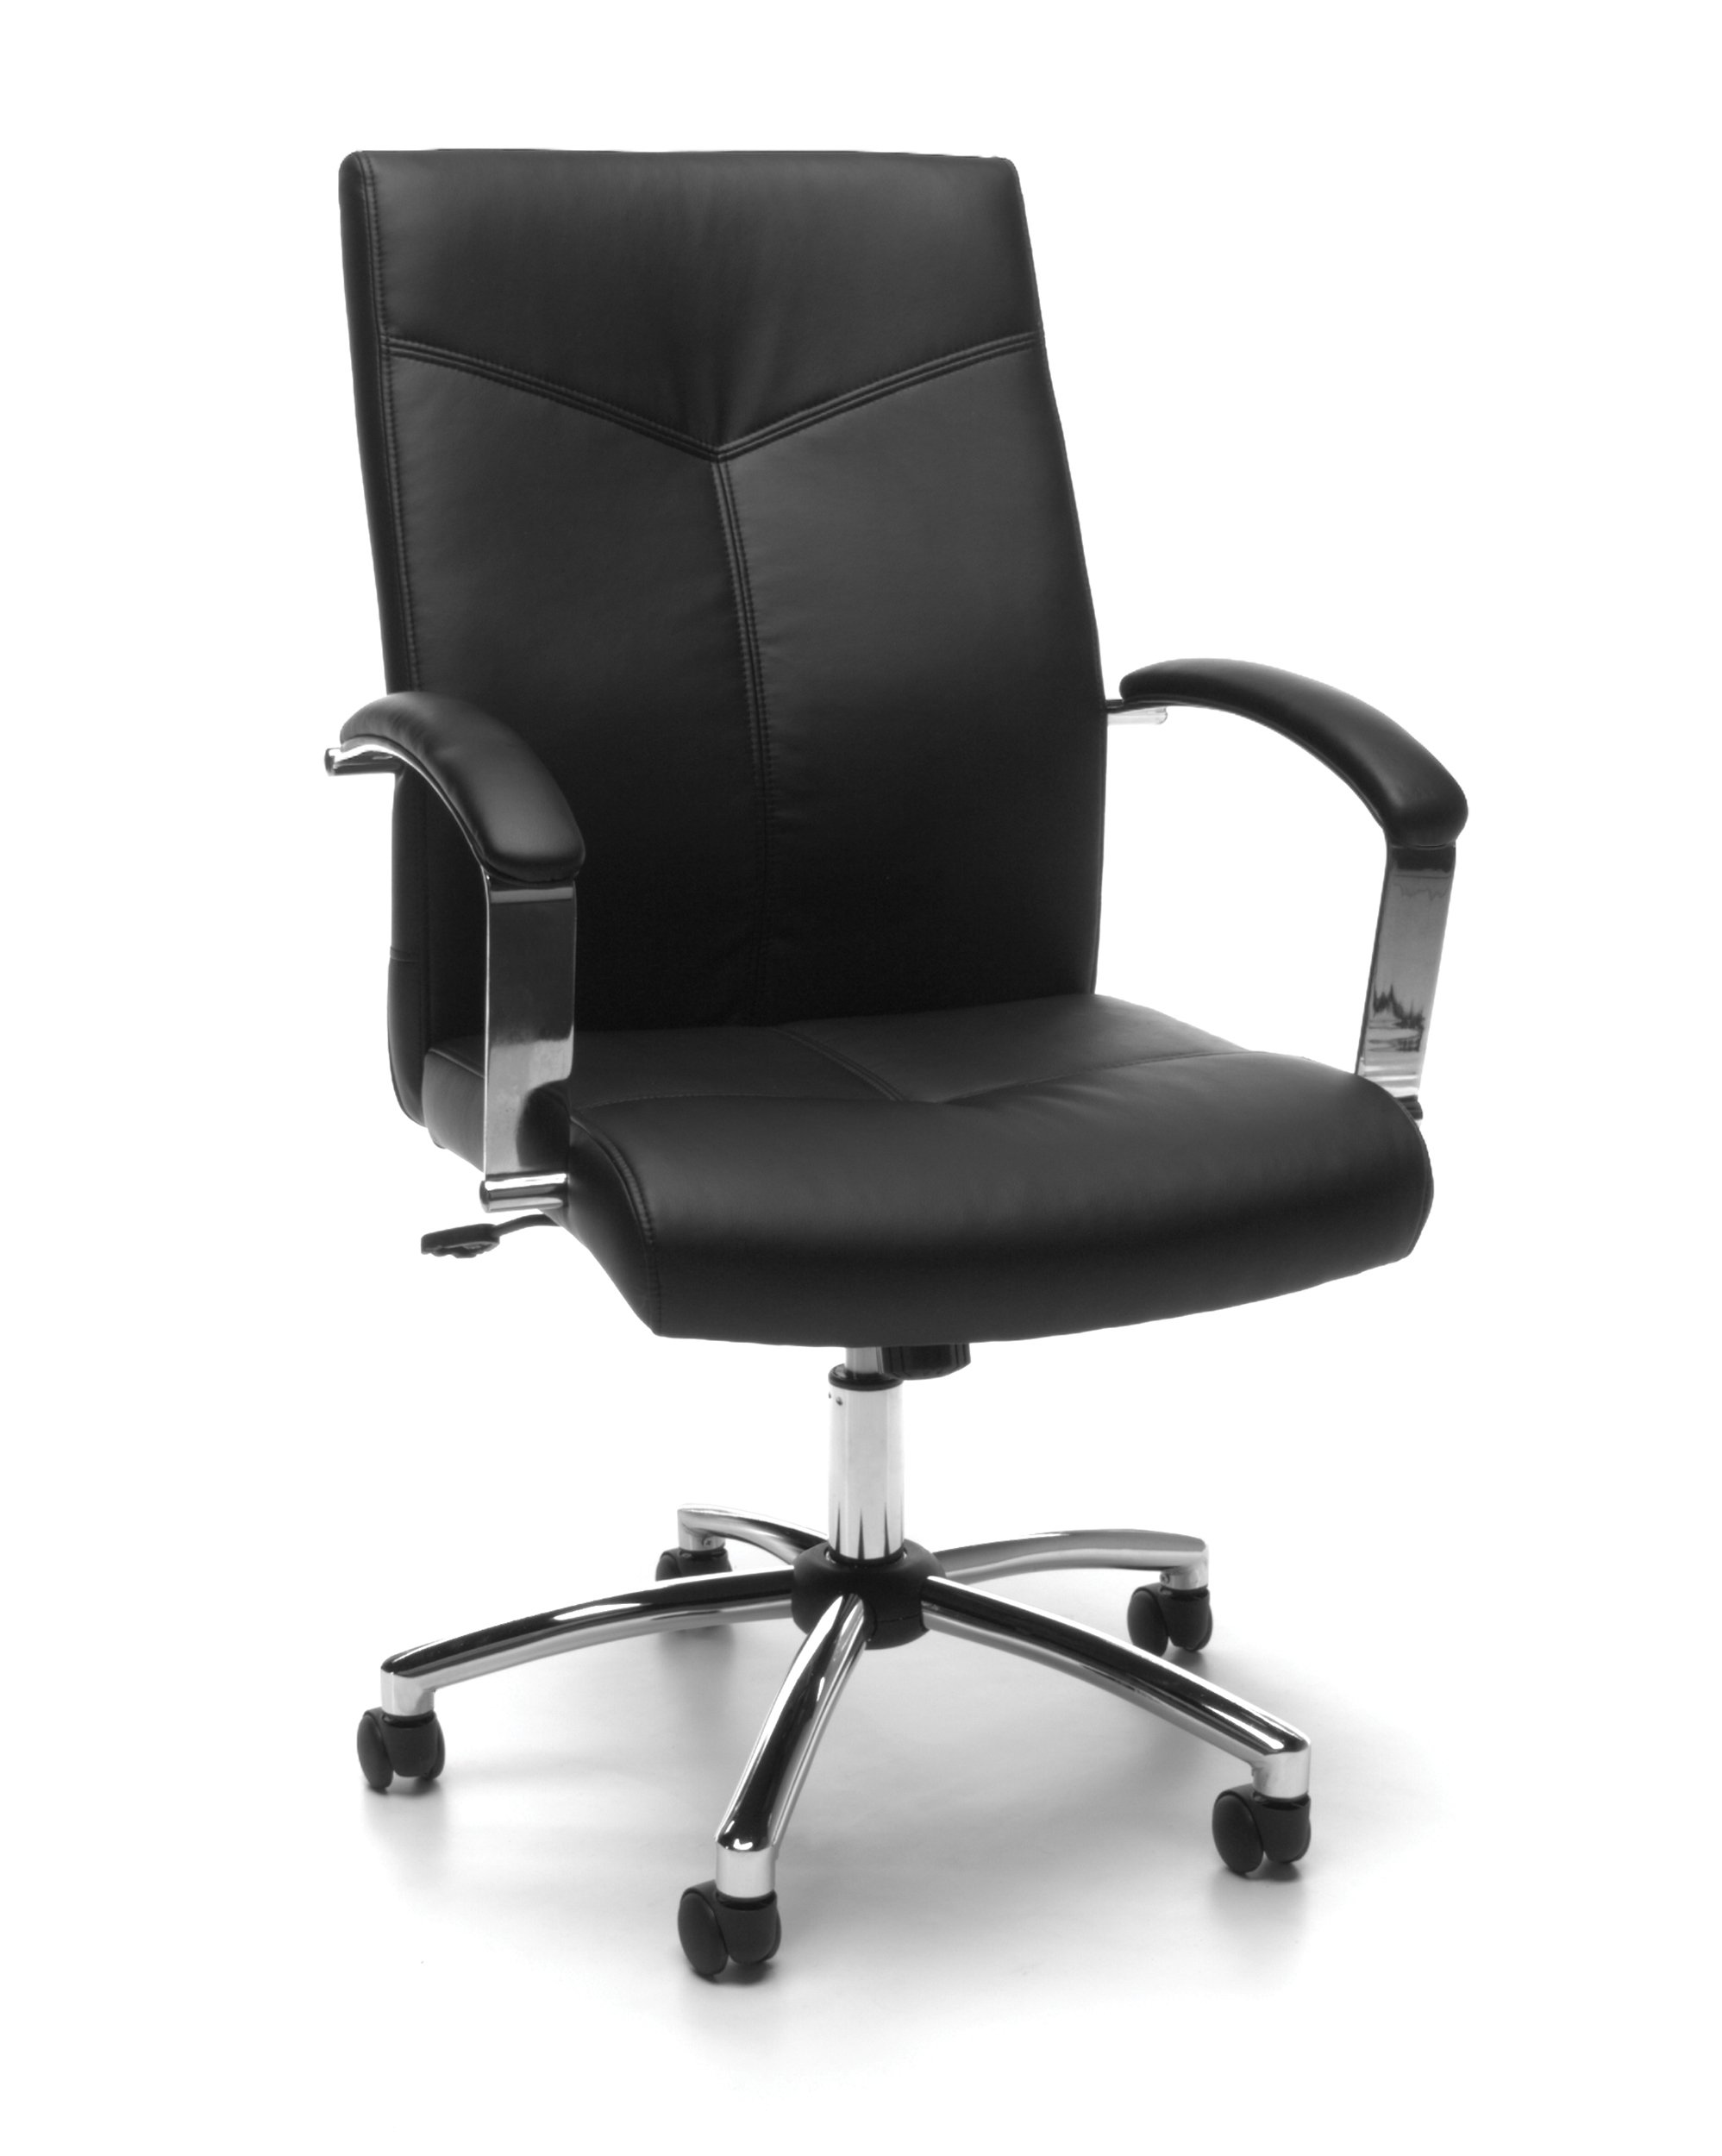 Essentials High Back Leather Executive Chair - Ergonomic Conference Chair with Padded Arms, Black (E1003-BLK)